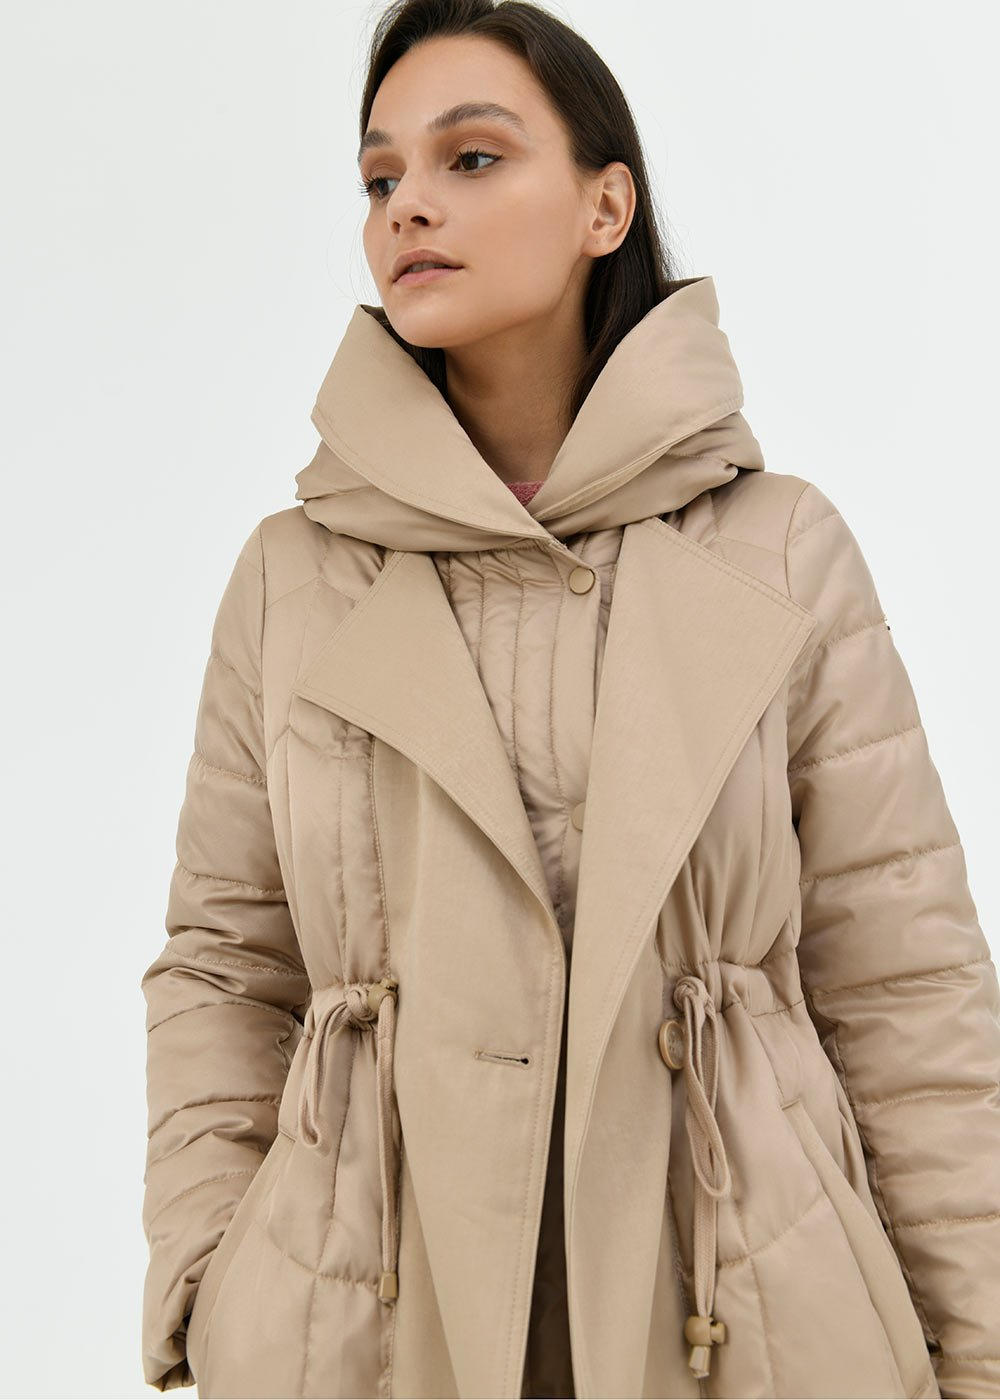 Paige trench coat-model bi-material down jacket - Light Beige - Woman